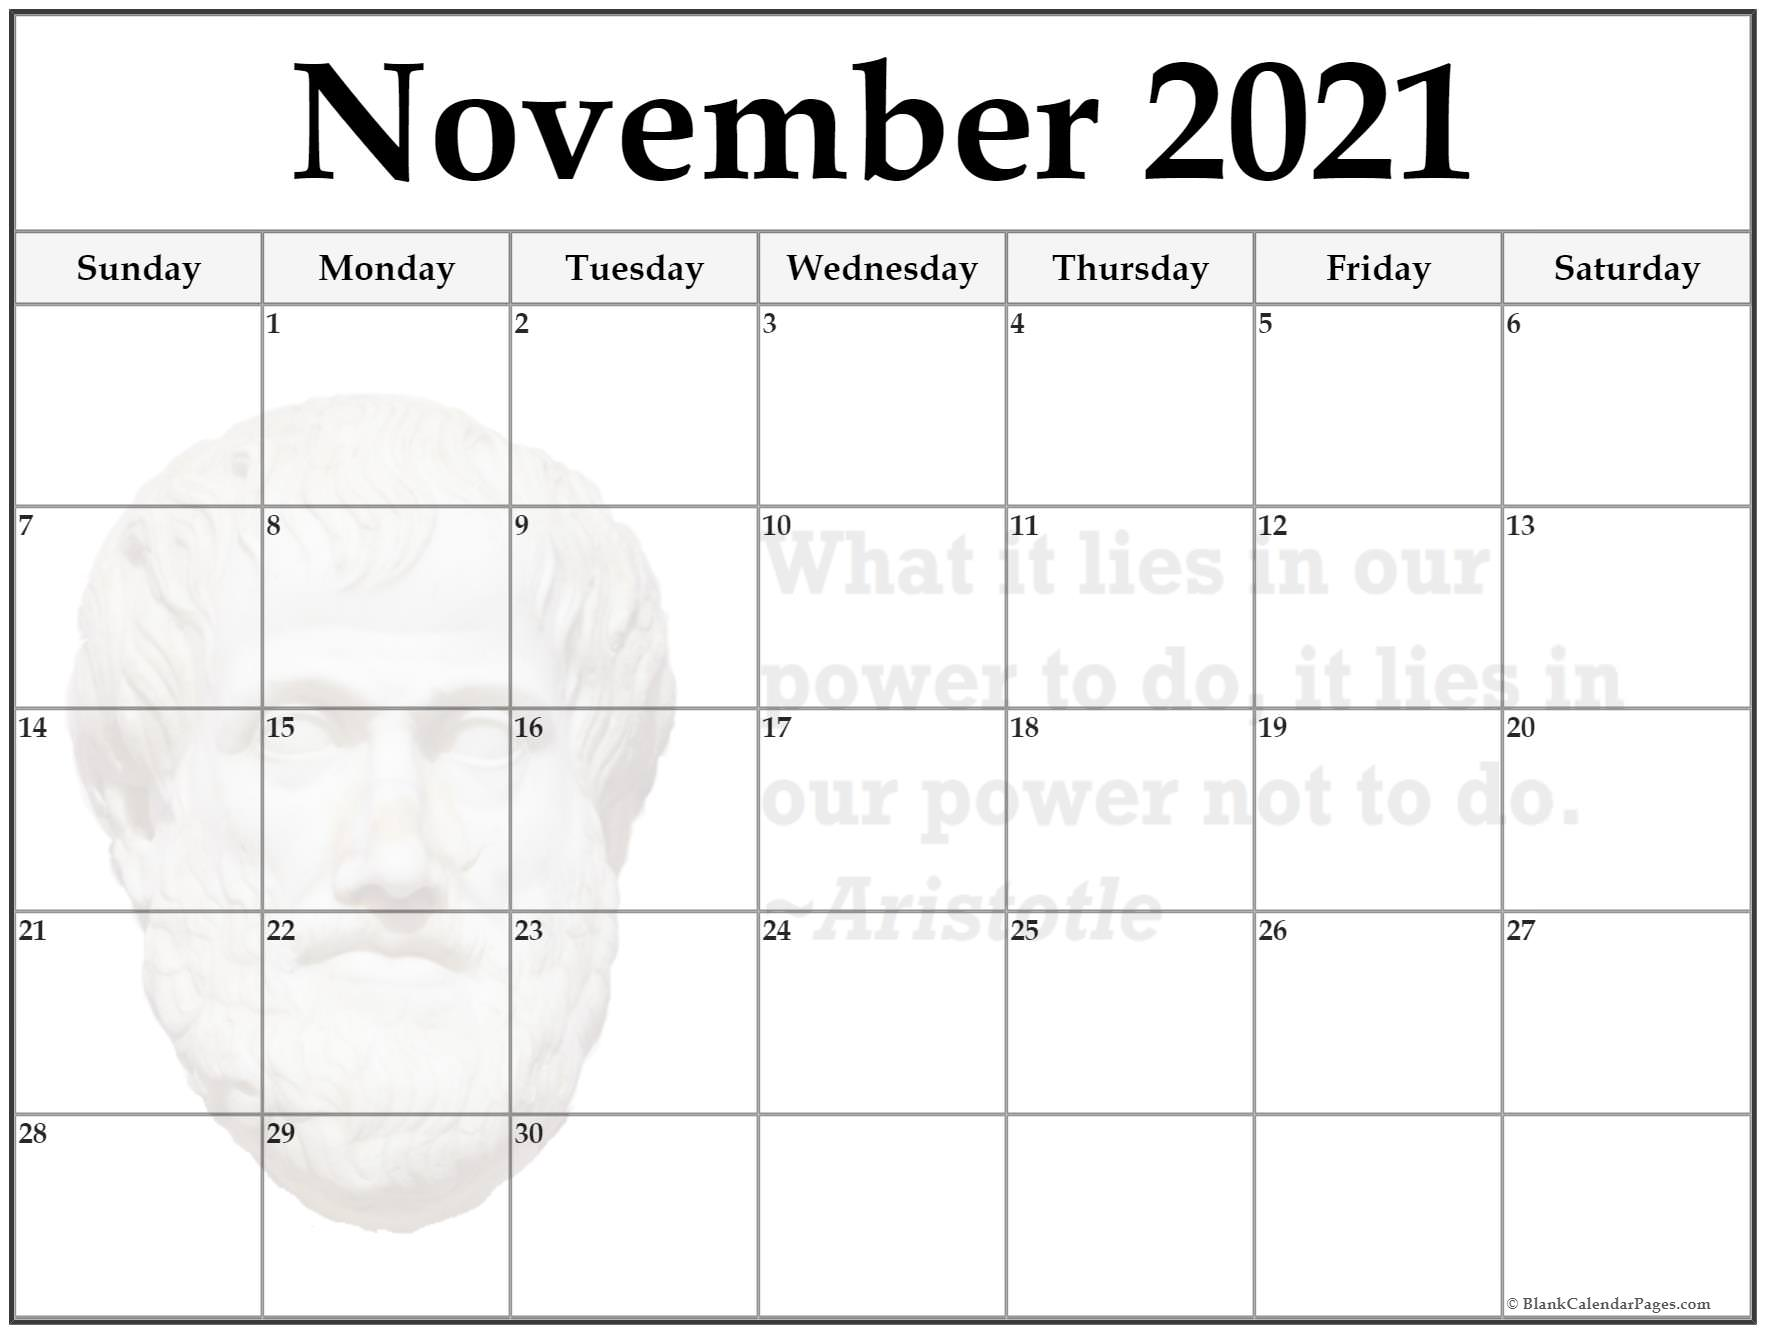 November aristotle calendar 2021What is lies in our power to do, it lies in our power not to do ~Aristotle